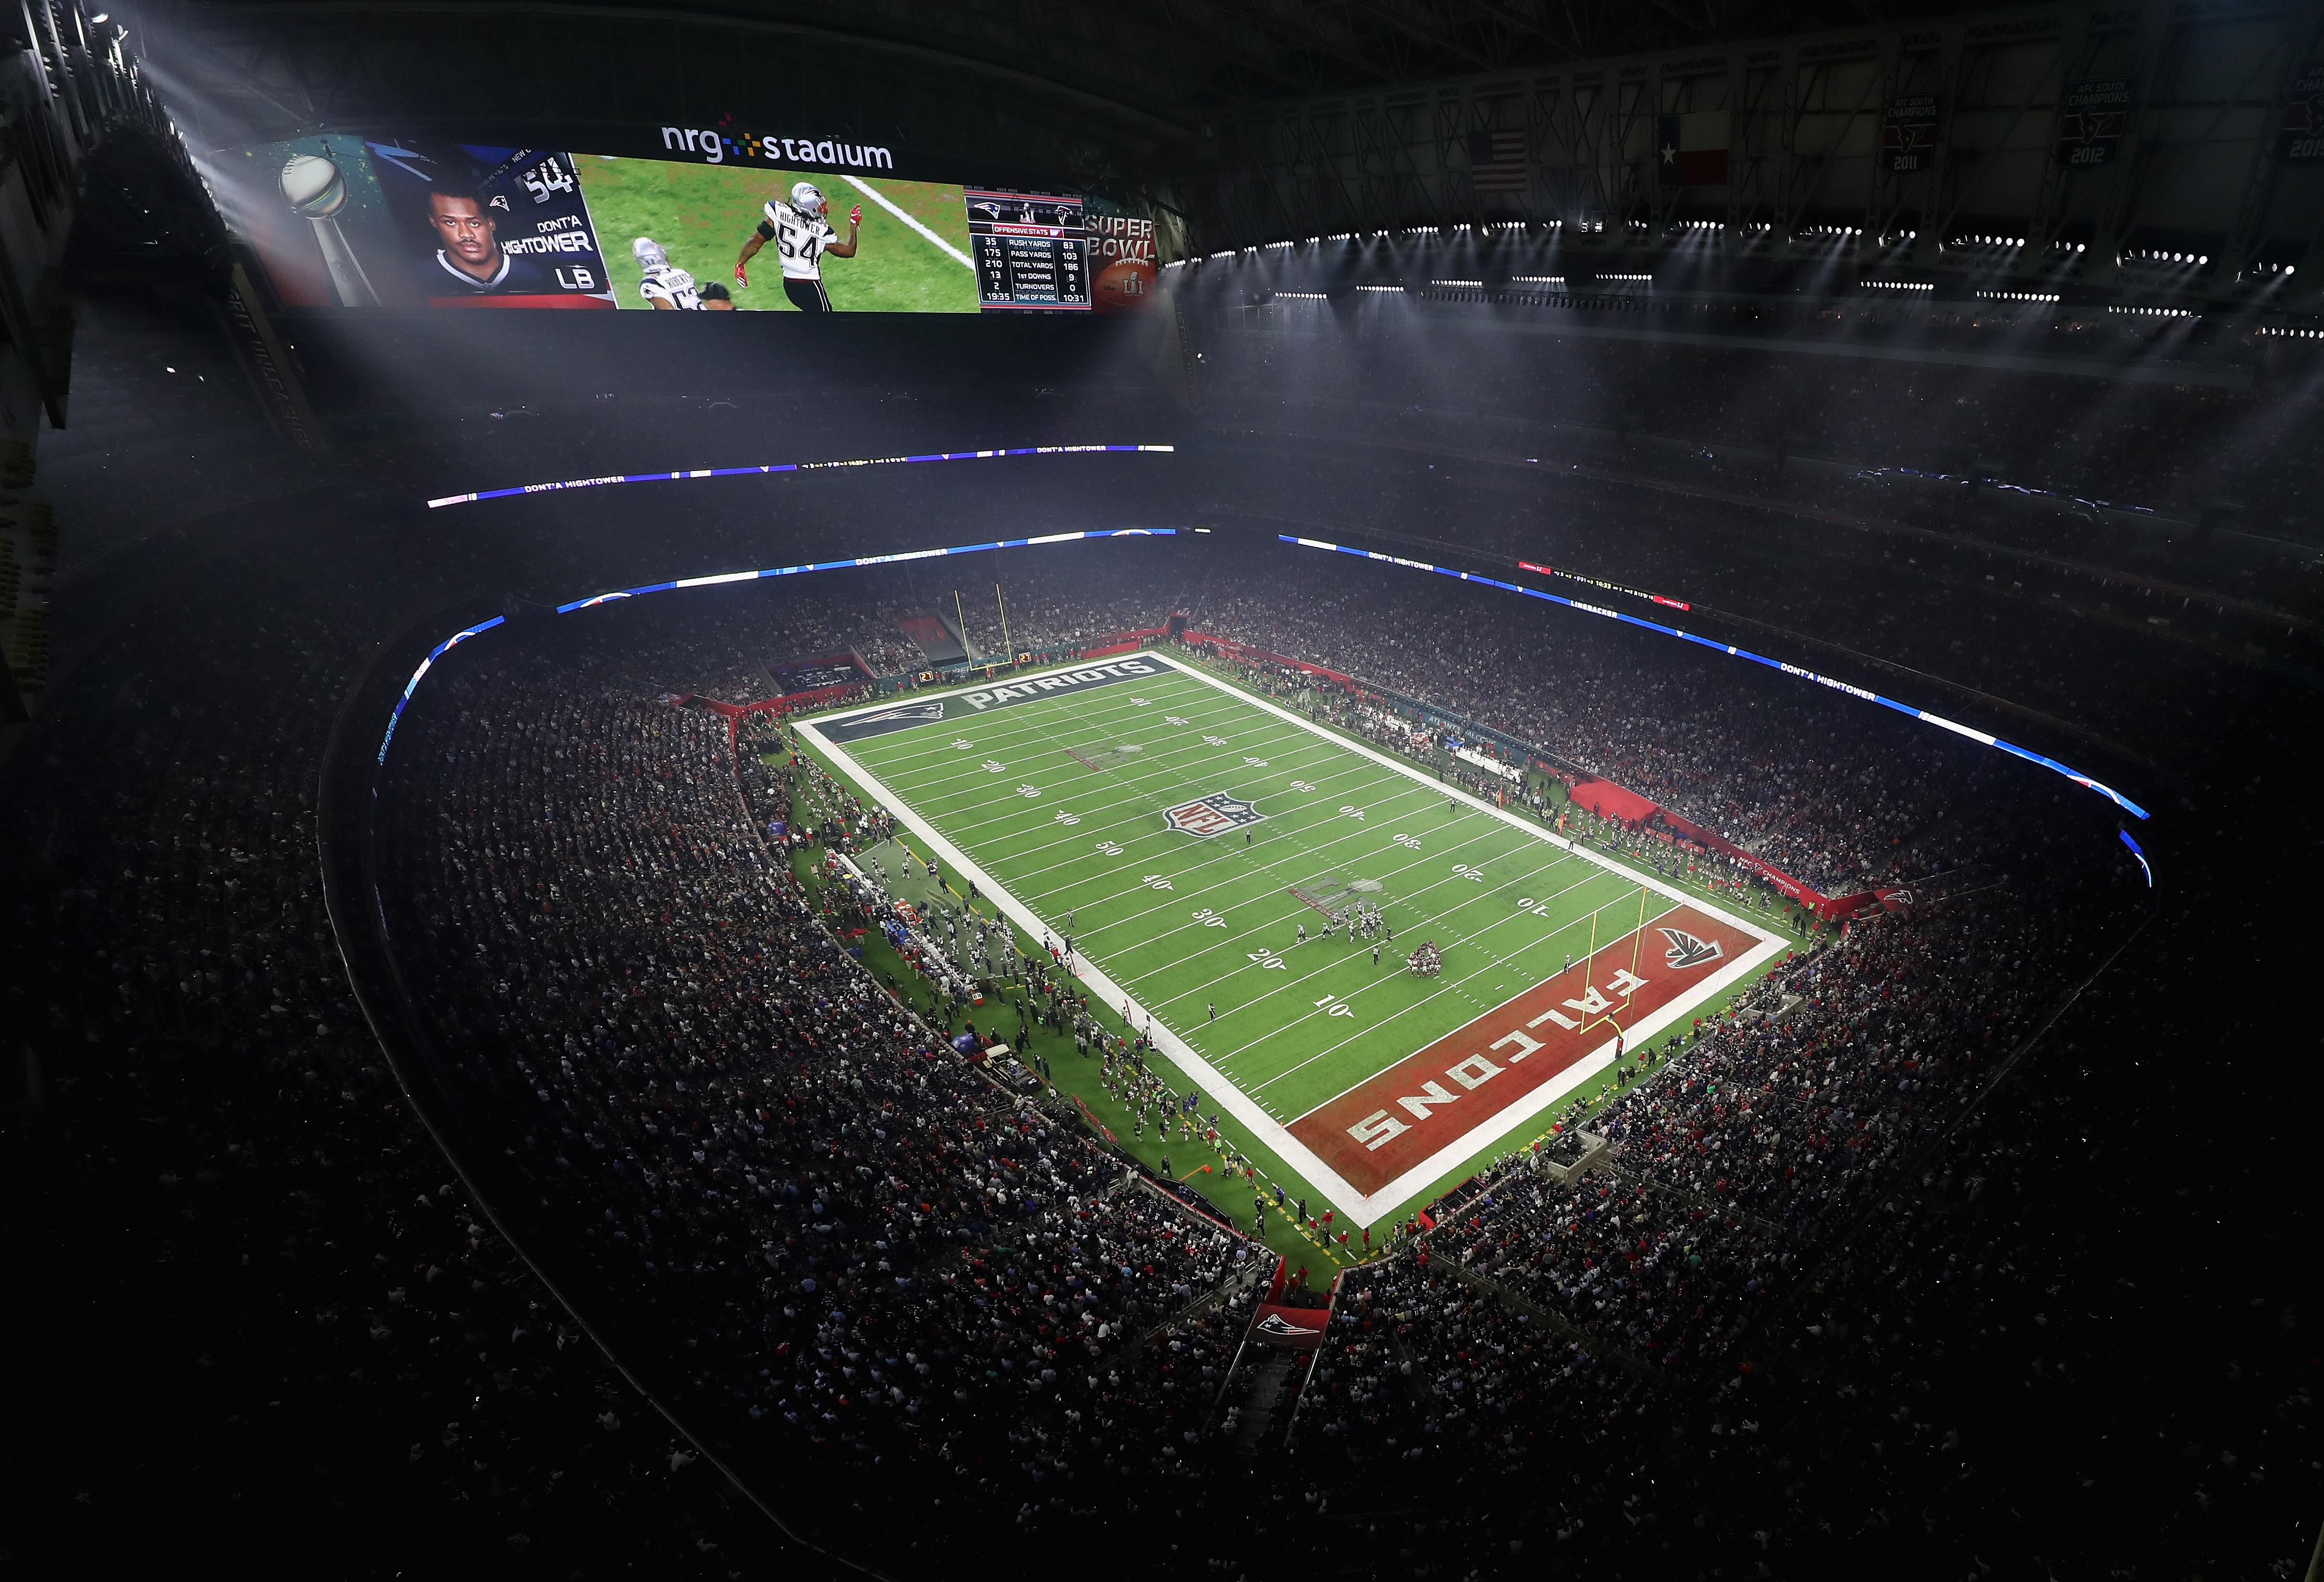 The field is 100 yards long, 53 yards wide and has 10 yard long endzones - where you score points